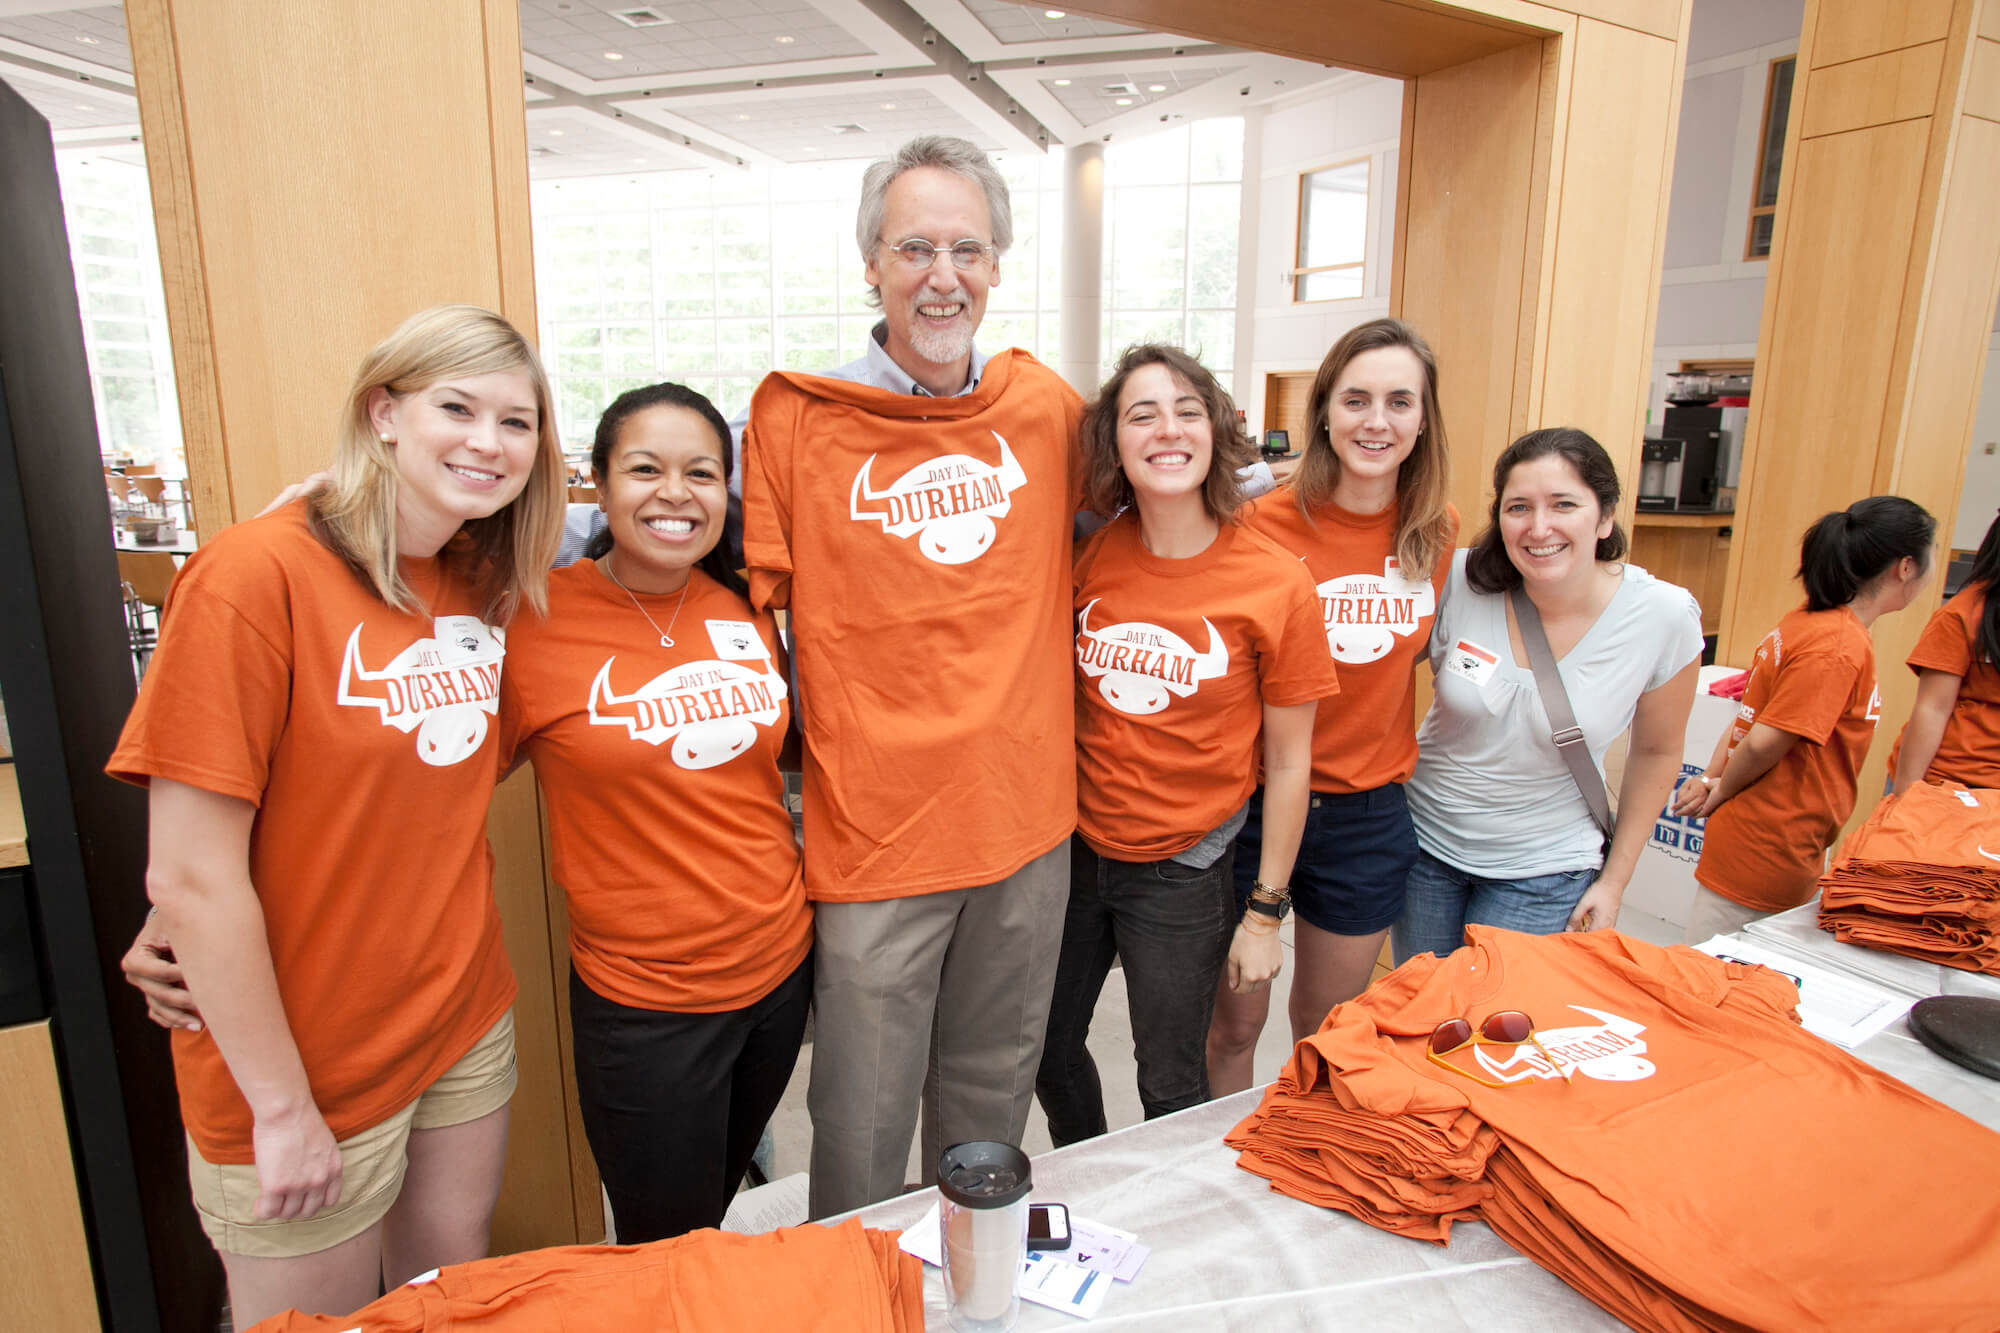 Bill Boulding with students wearing Durham t-shirts